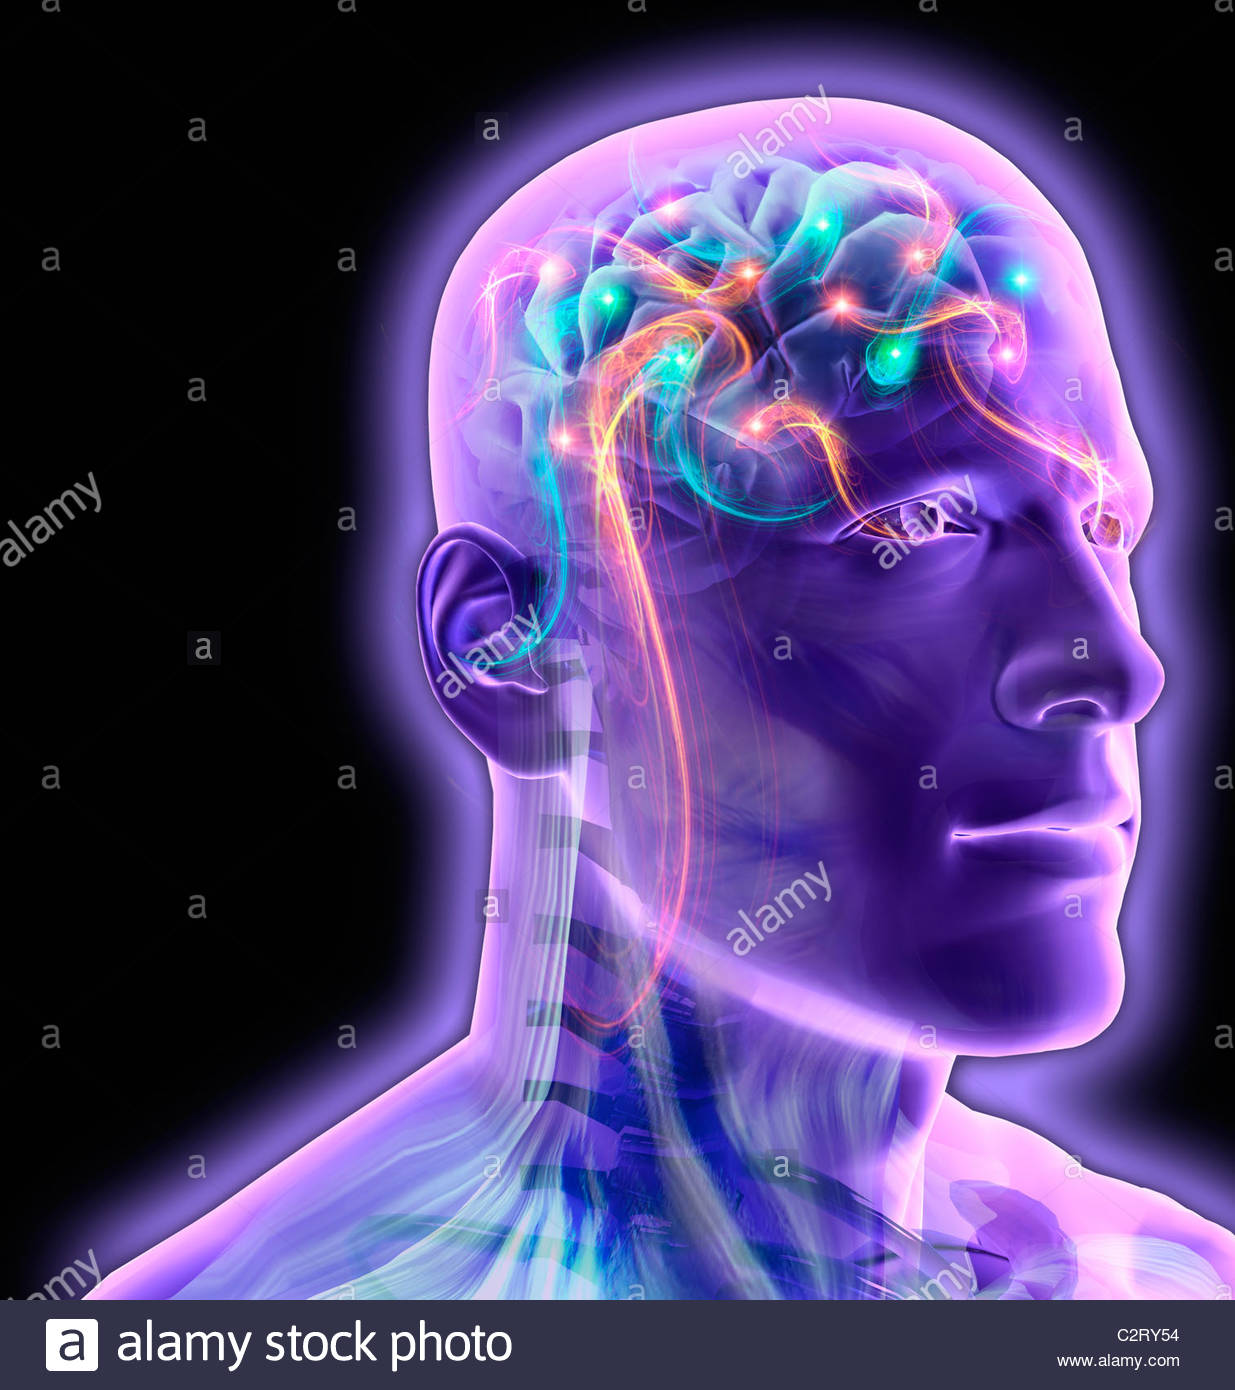 Transparent man's brain glowing and sparkling - Stock Image